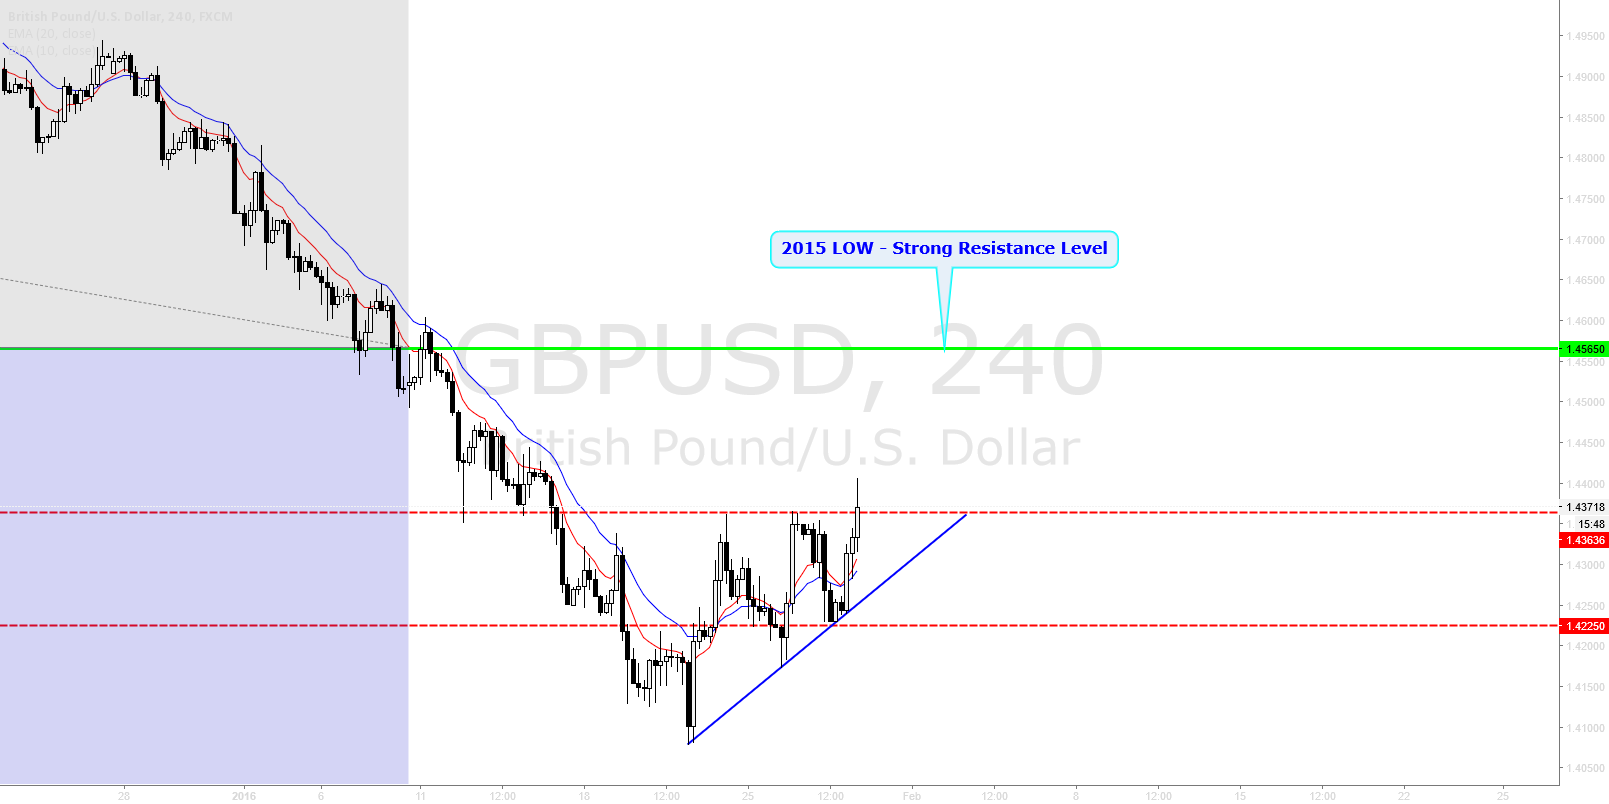 GBPUSD Bullish Retracement.  Waiting for close above 1.4360